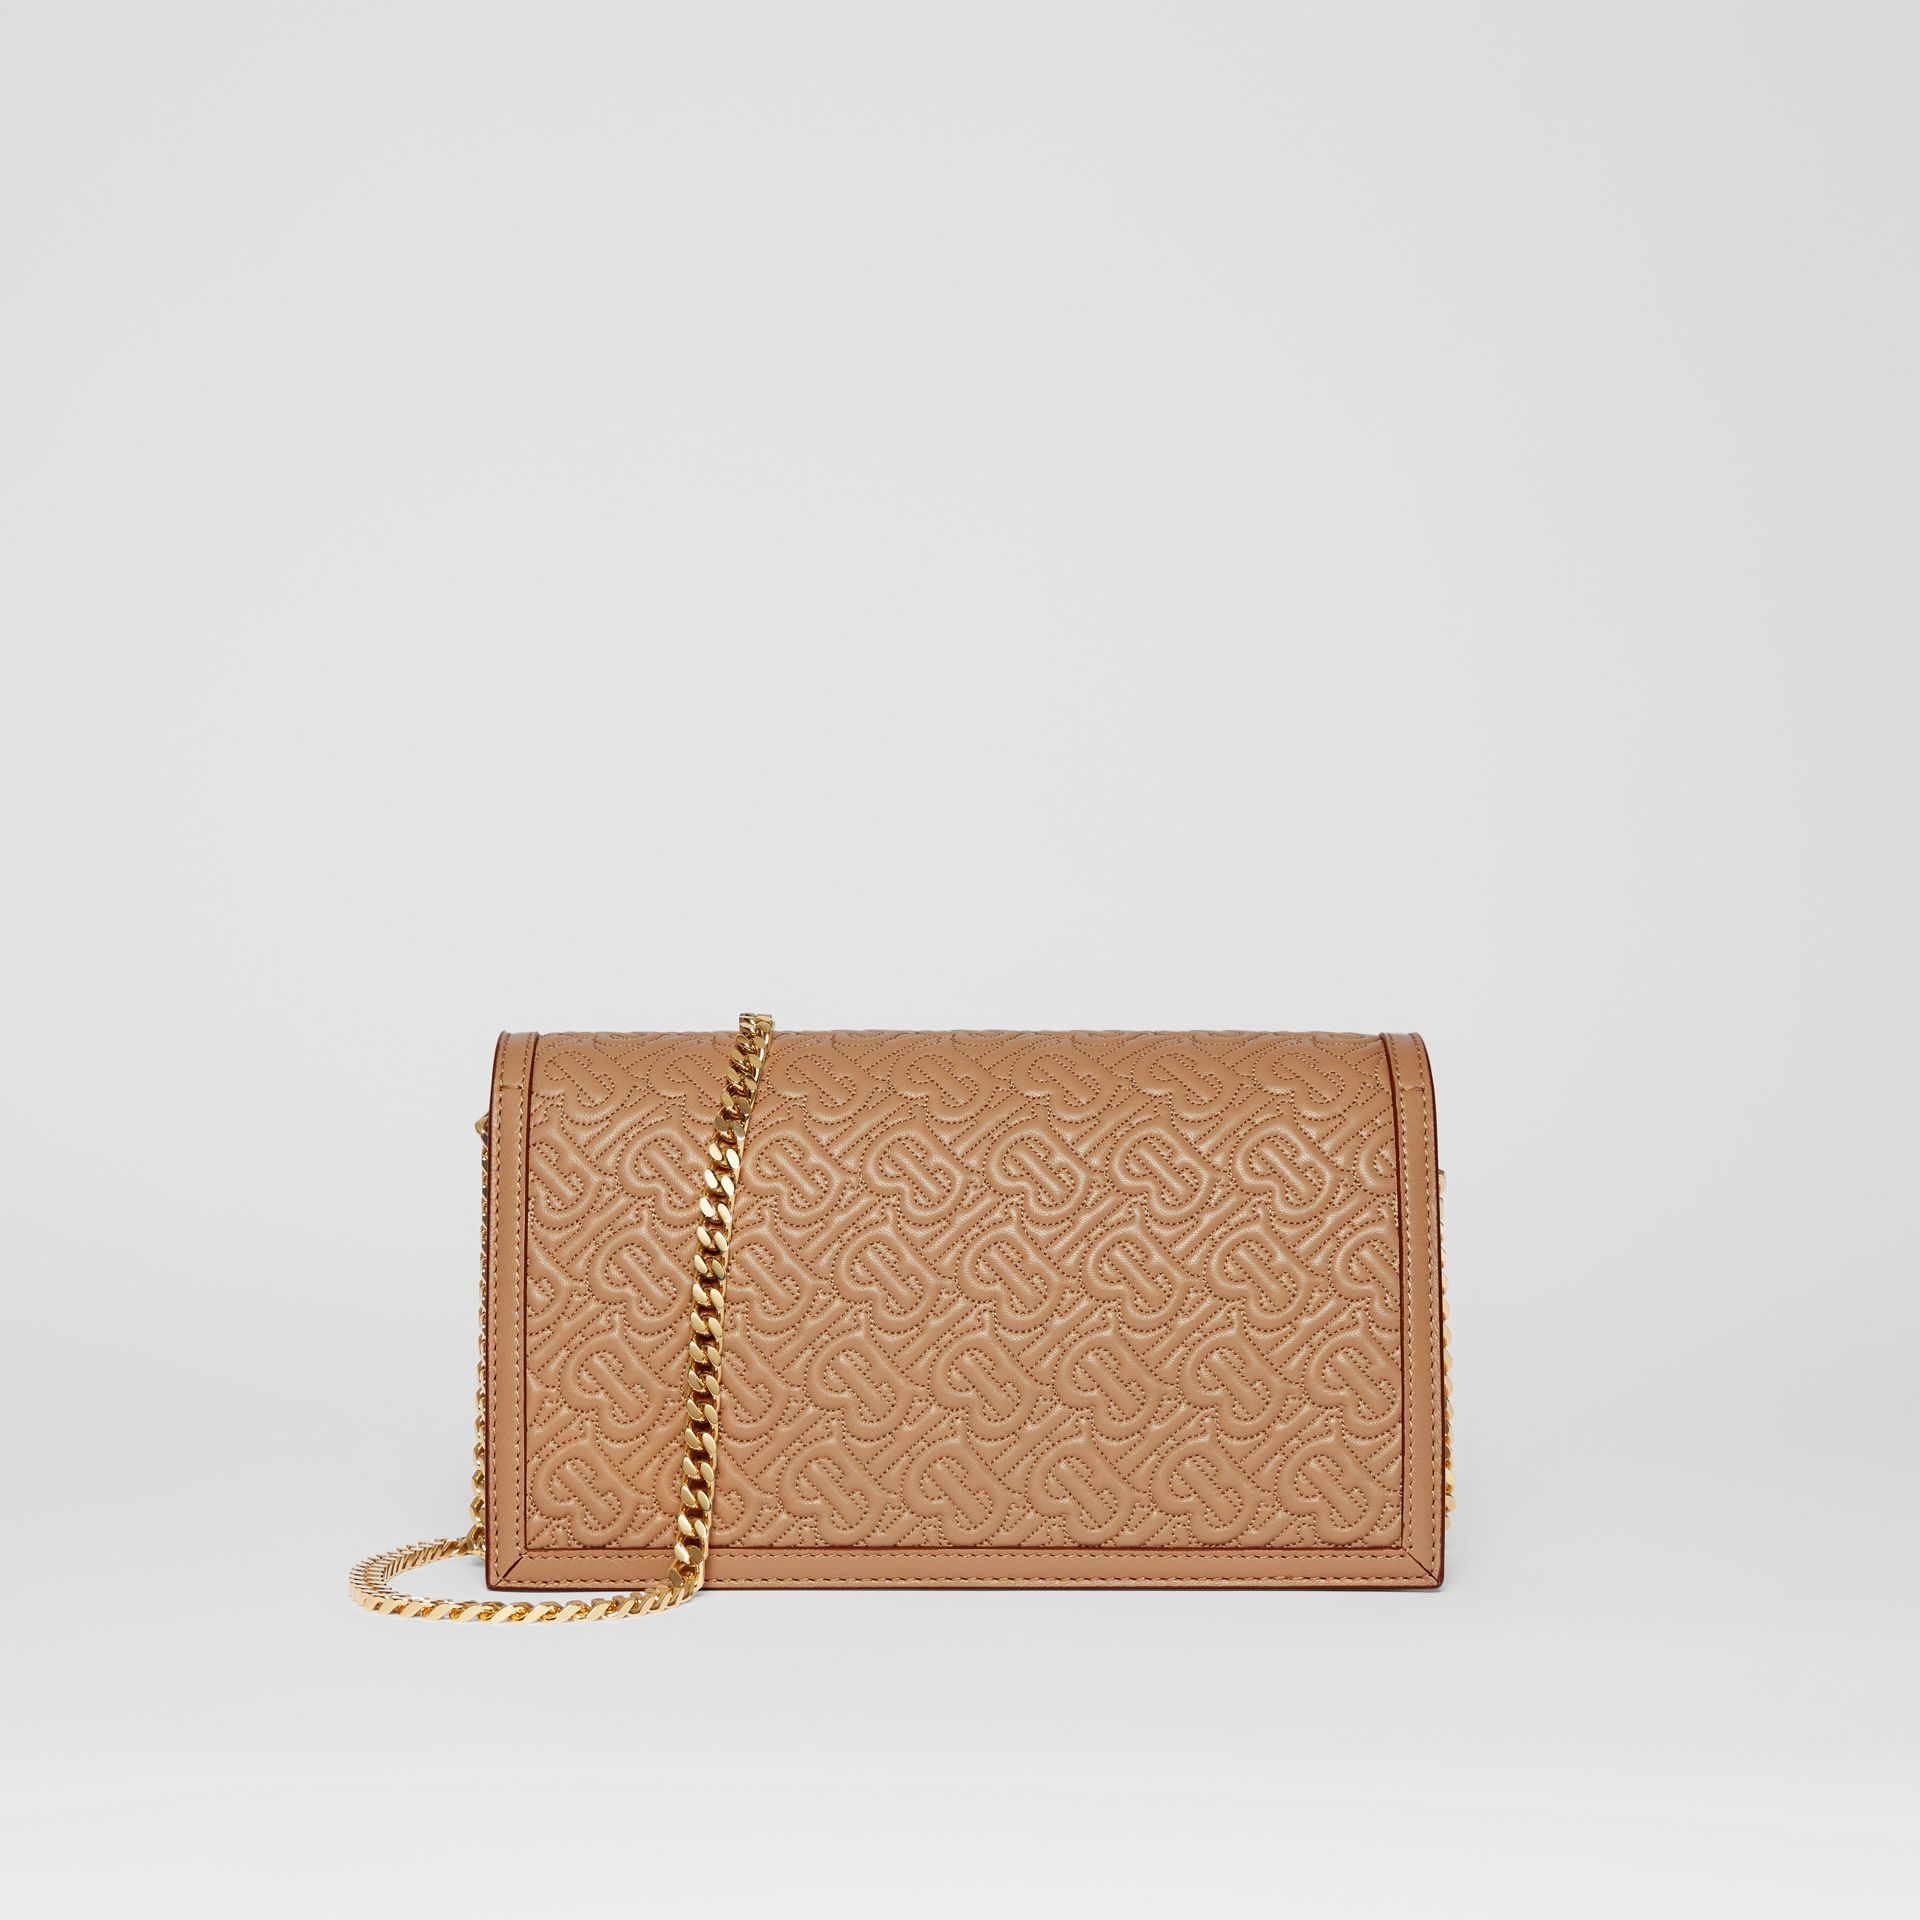 Small Quilted Monogram TB Envelope Clutch in Honey - Women | Burberry - gallery image 5